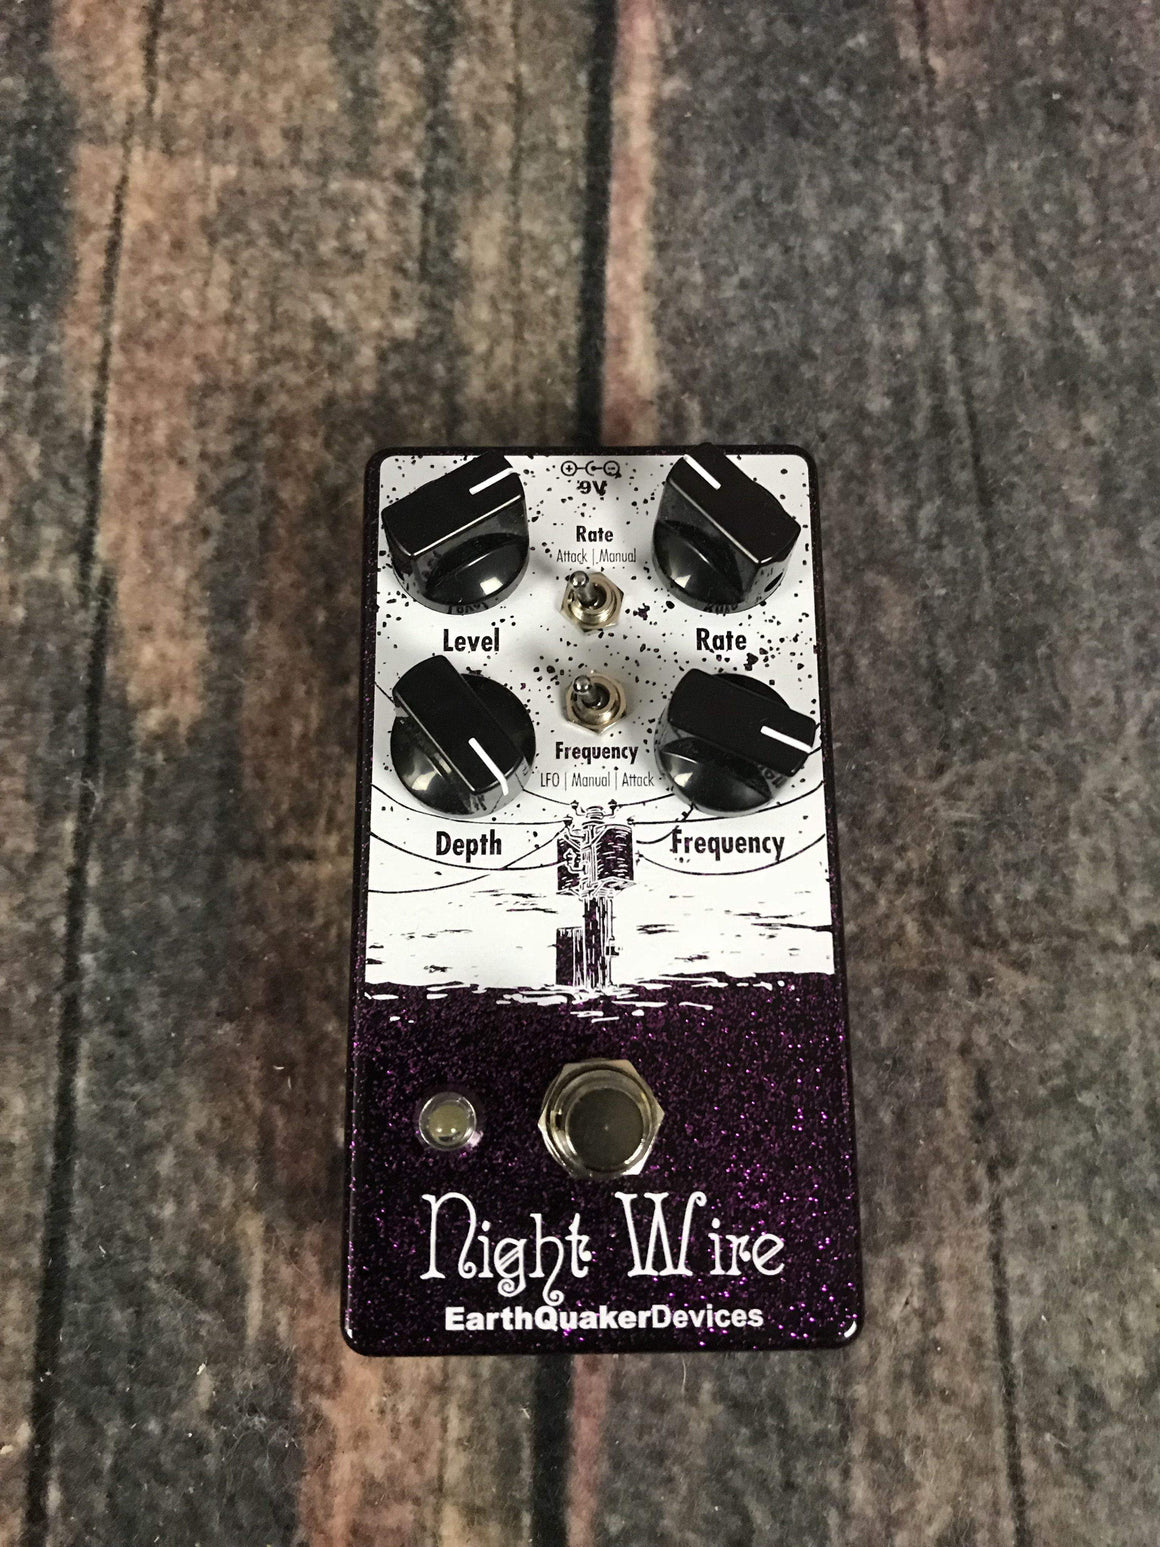 Earthquaker Devices pedal Earthquaker Devices NightWire Harmonic Tremolo